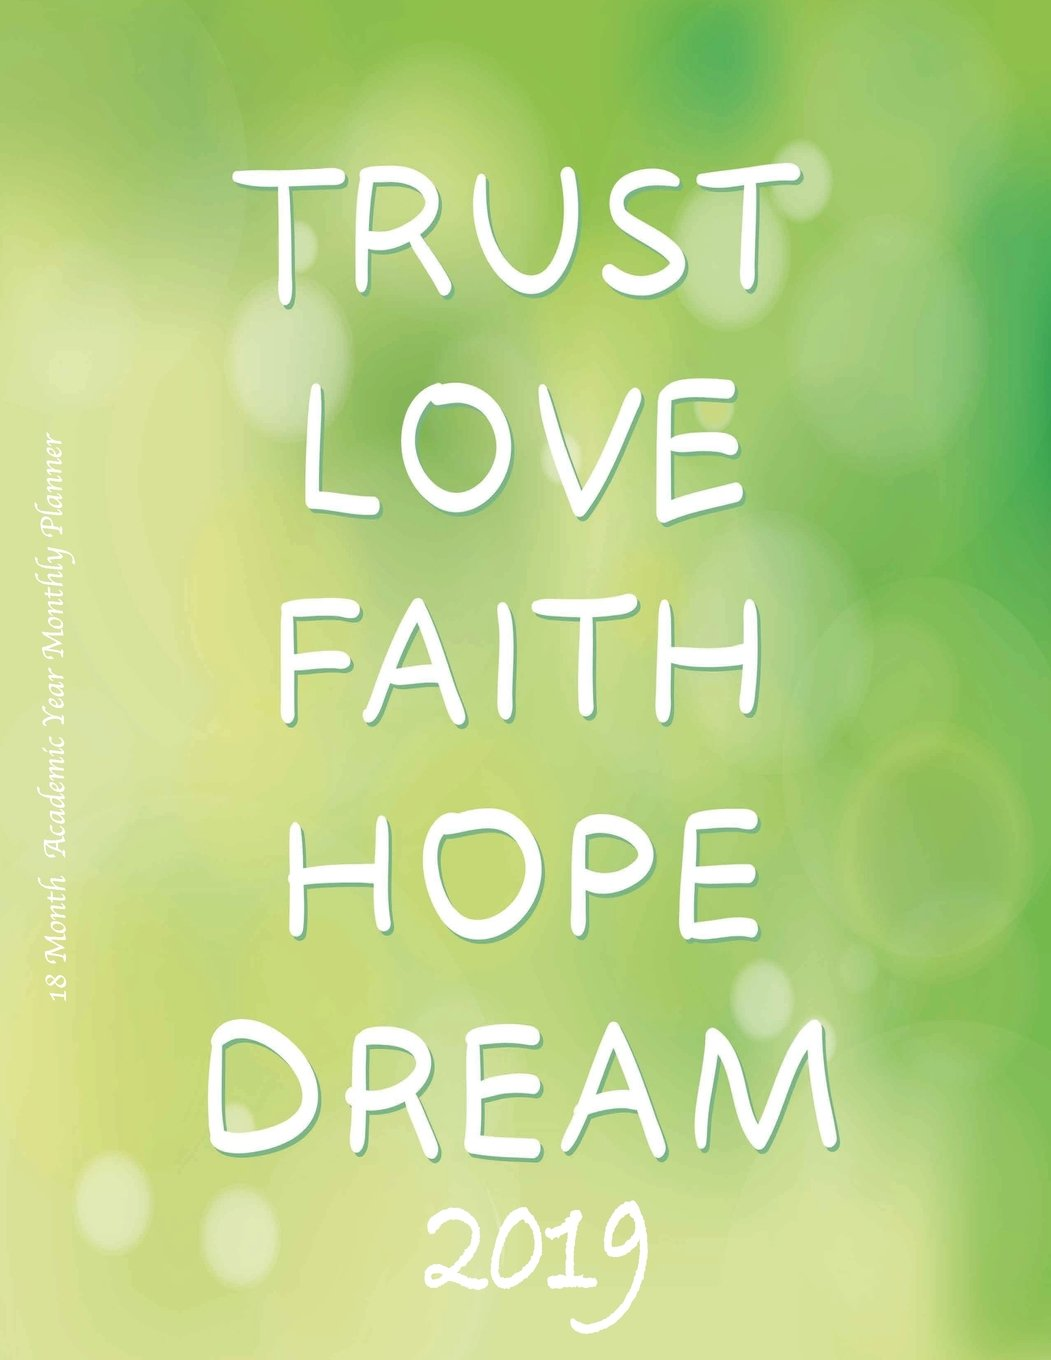 Download Love Faith Hope Dream 2019 18 Month  Academic Year Monthly Planner: July 2018 To December 2019 Weekly and Monthly Large 8.5x11 Organizer with ... Motivational Quotes Planners) (Volume 74) pdf epub